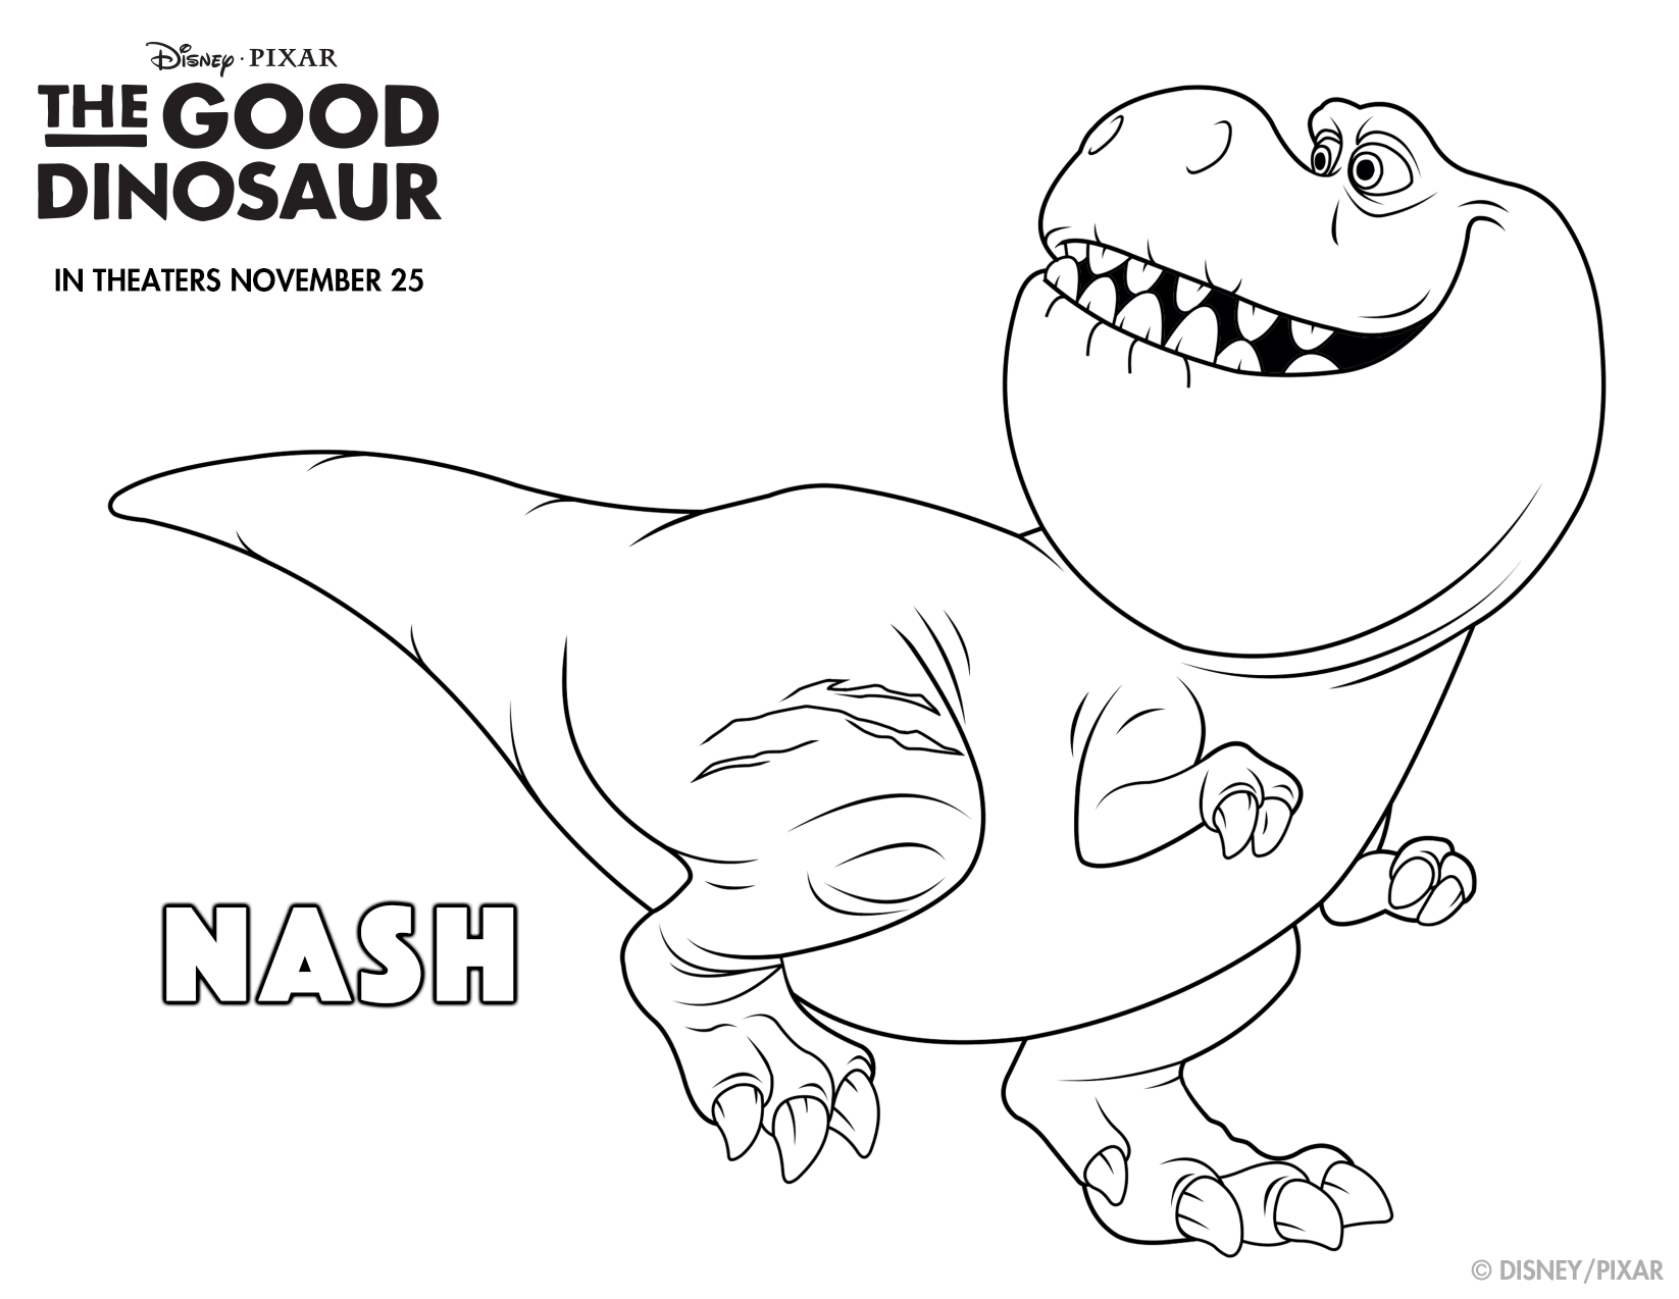 1679x1299 Get Rough And Tough With This Good Dino Coloring Sheet! Meet Nash